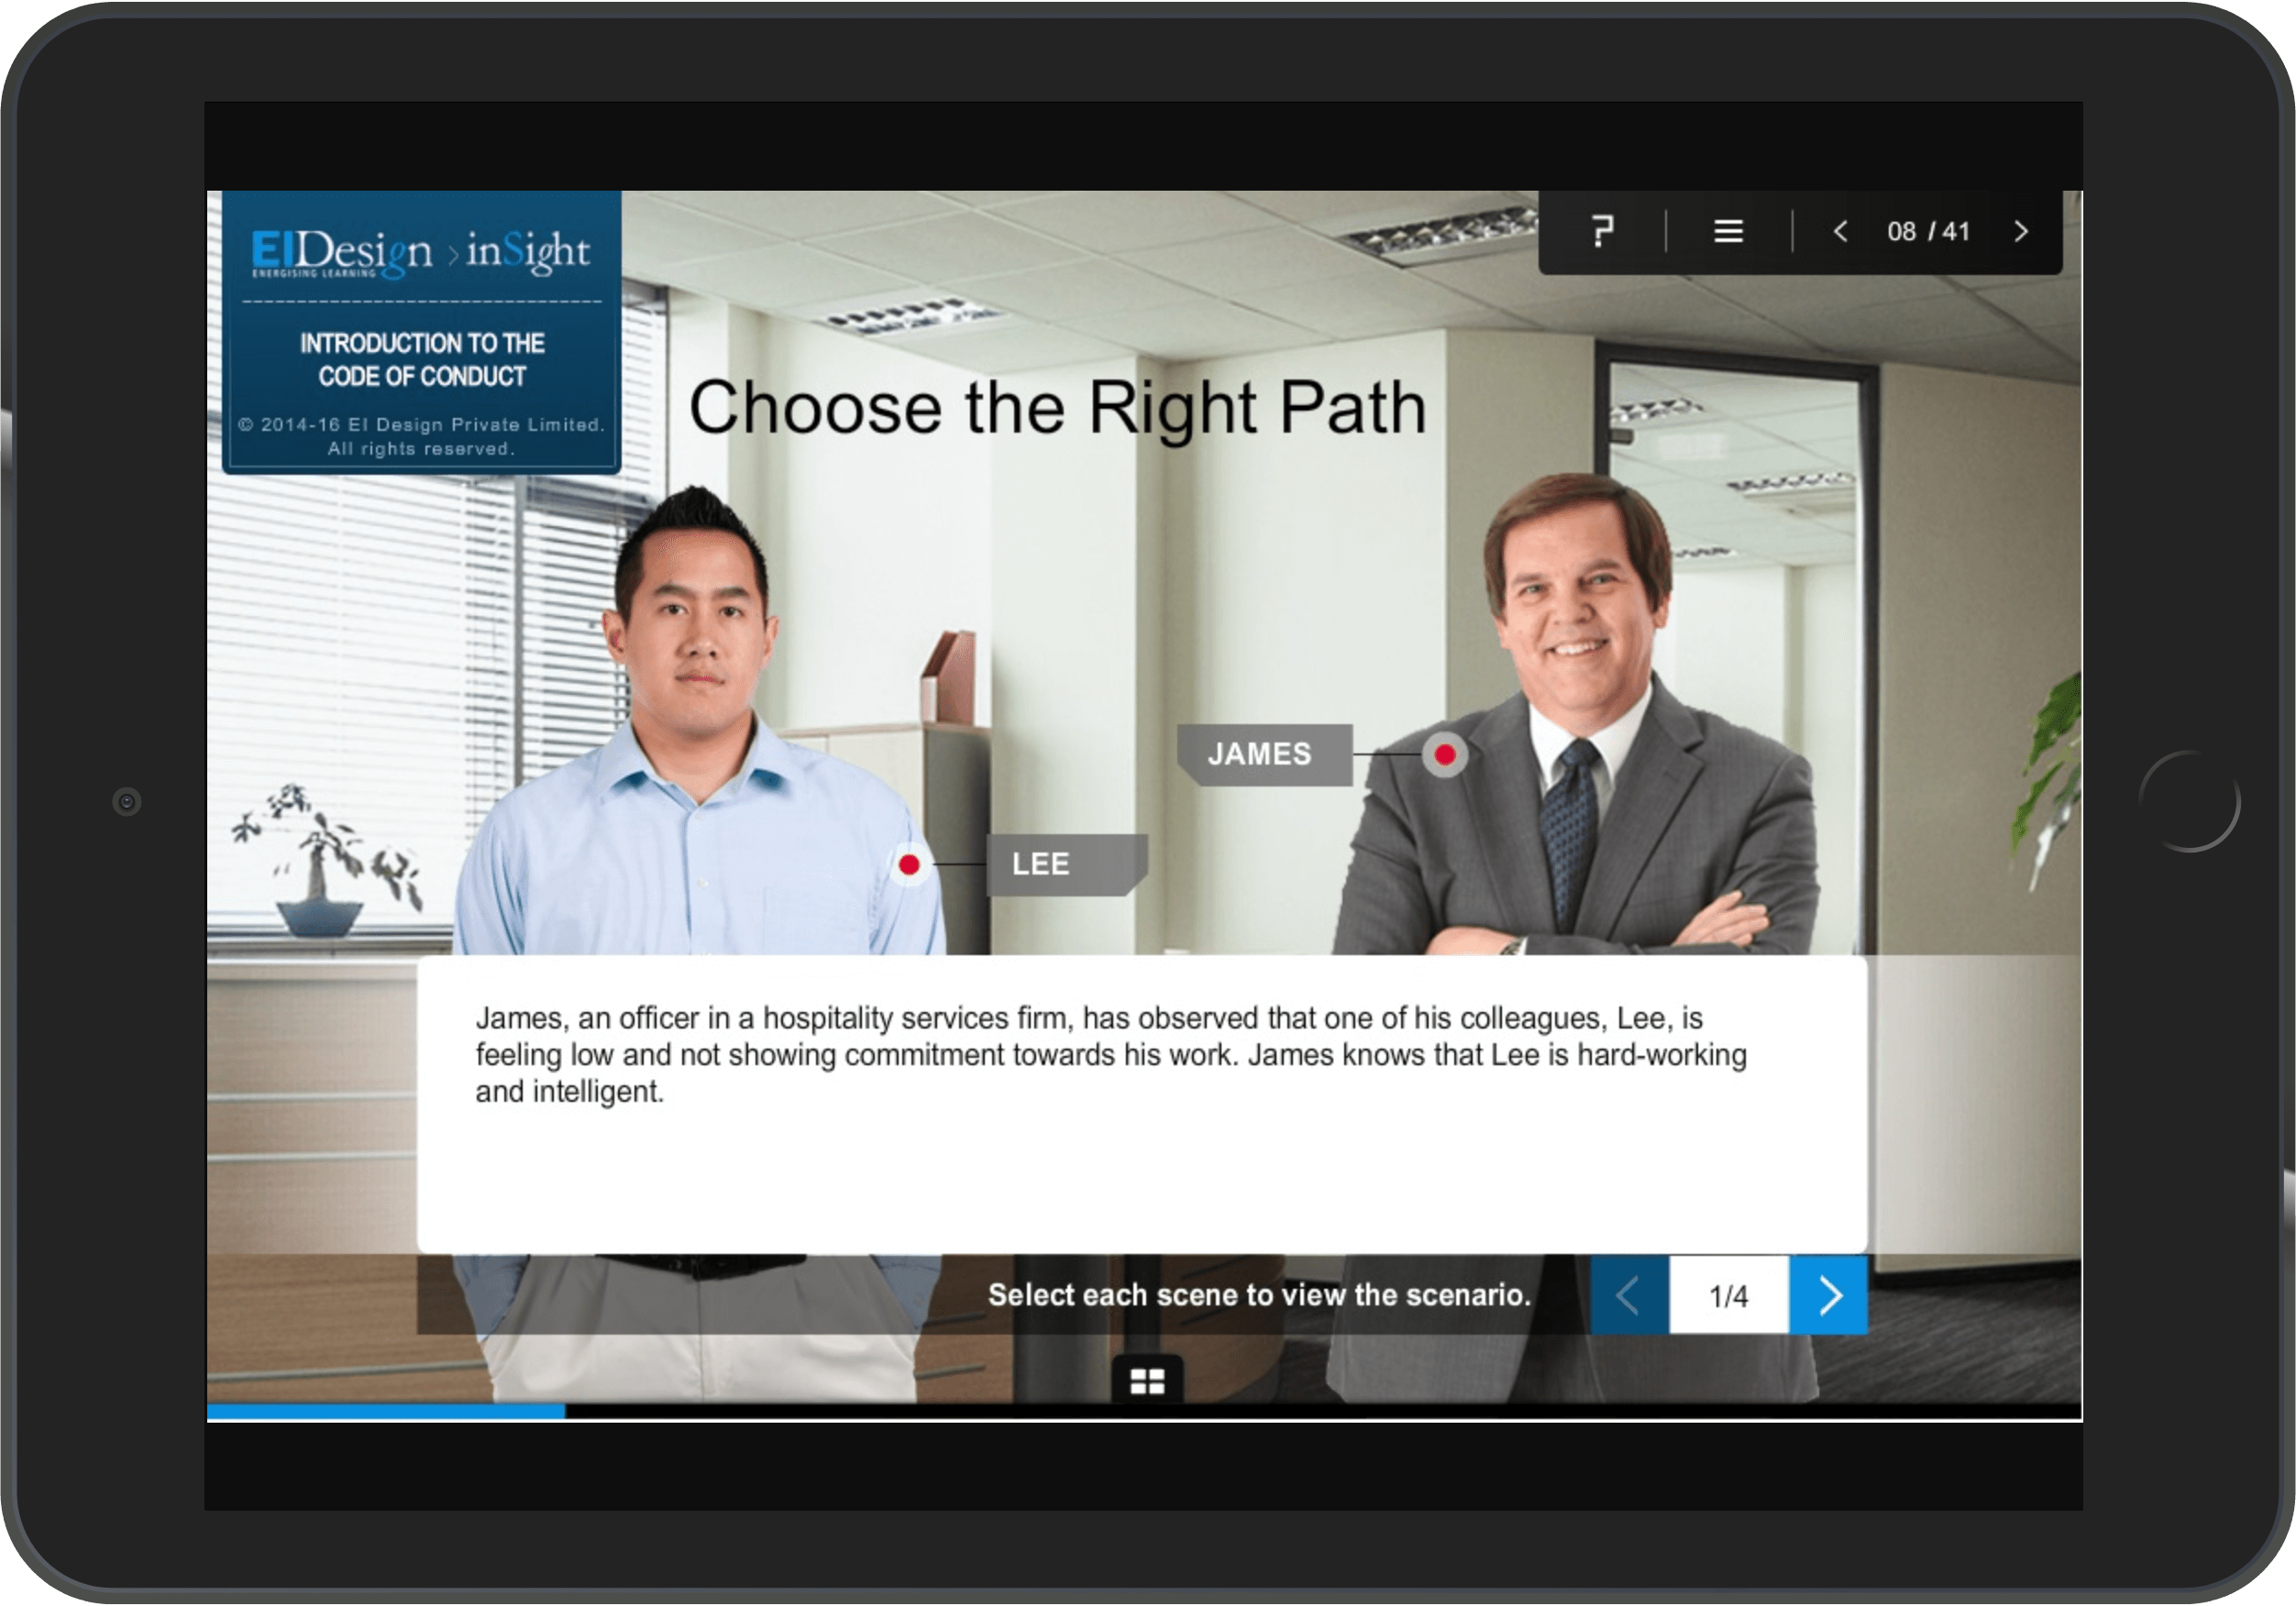 Compliance program Case Study - Choose Right Path